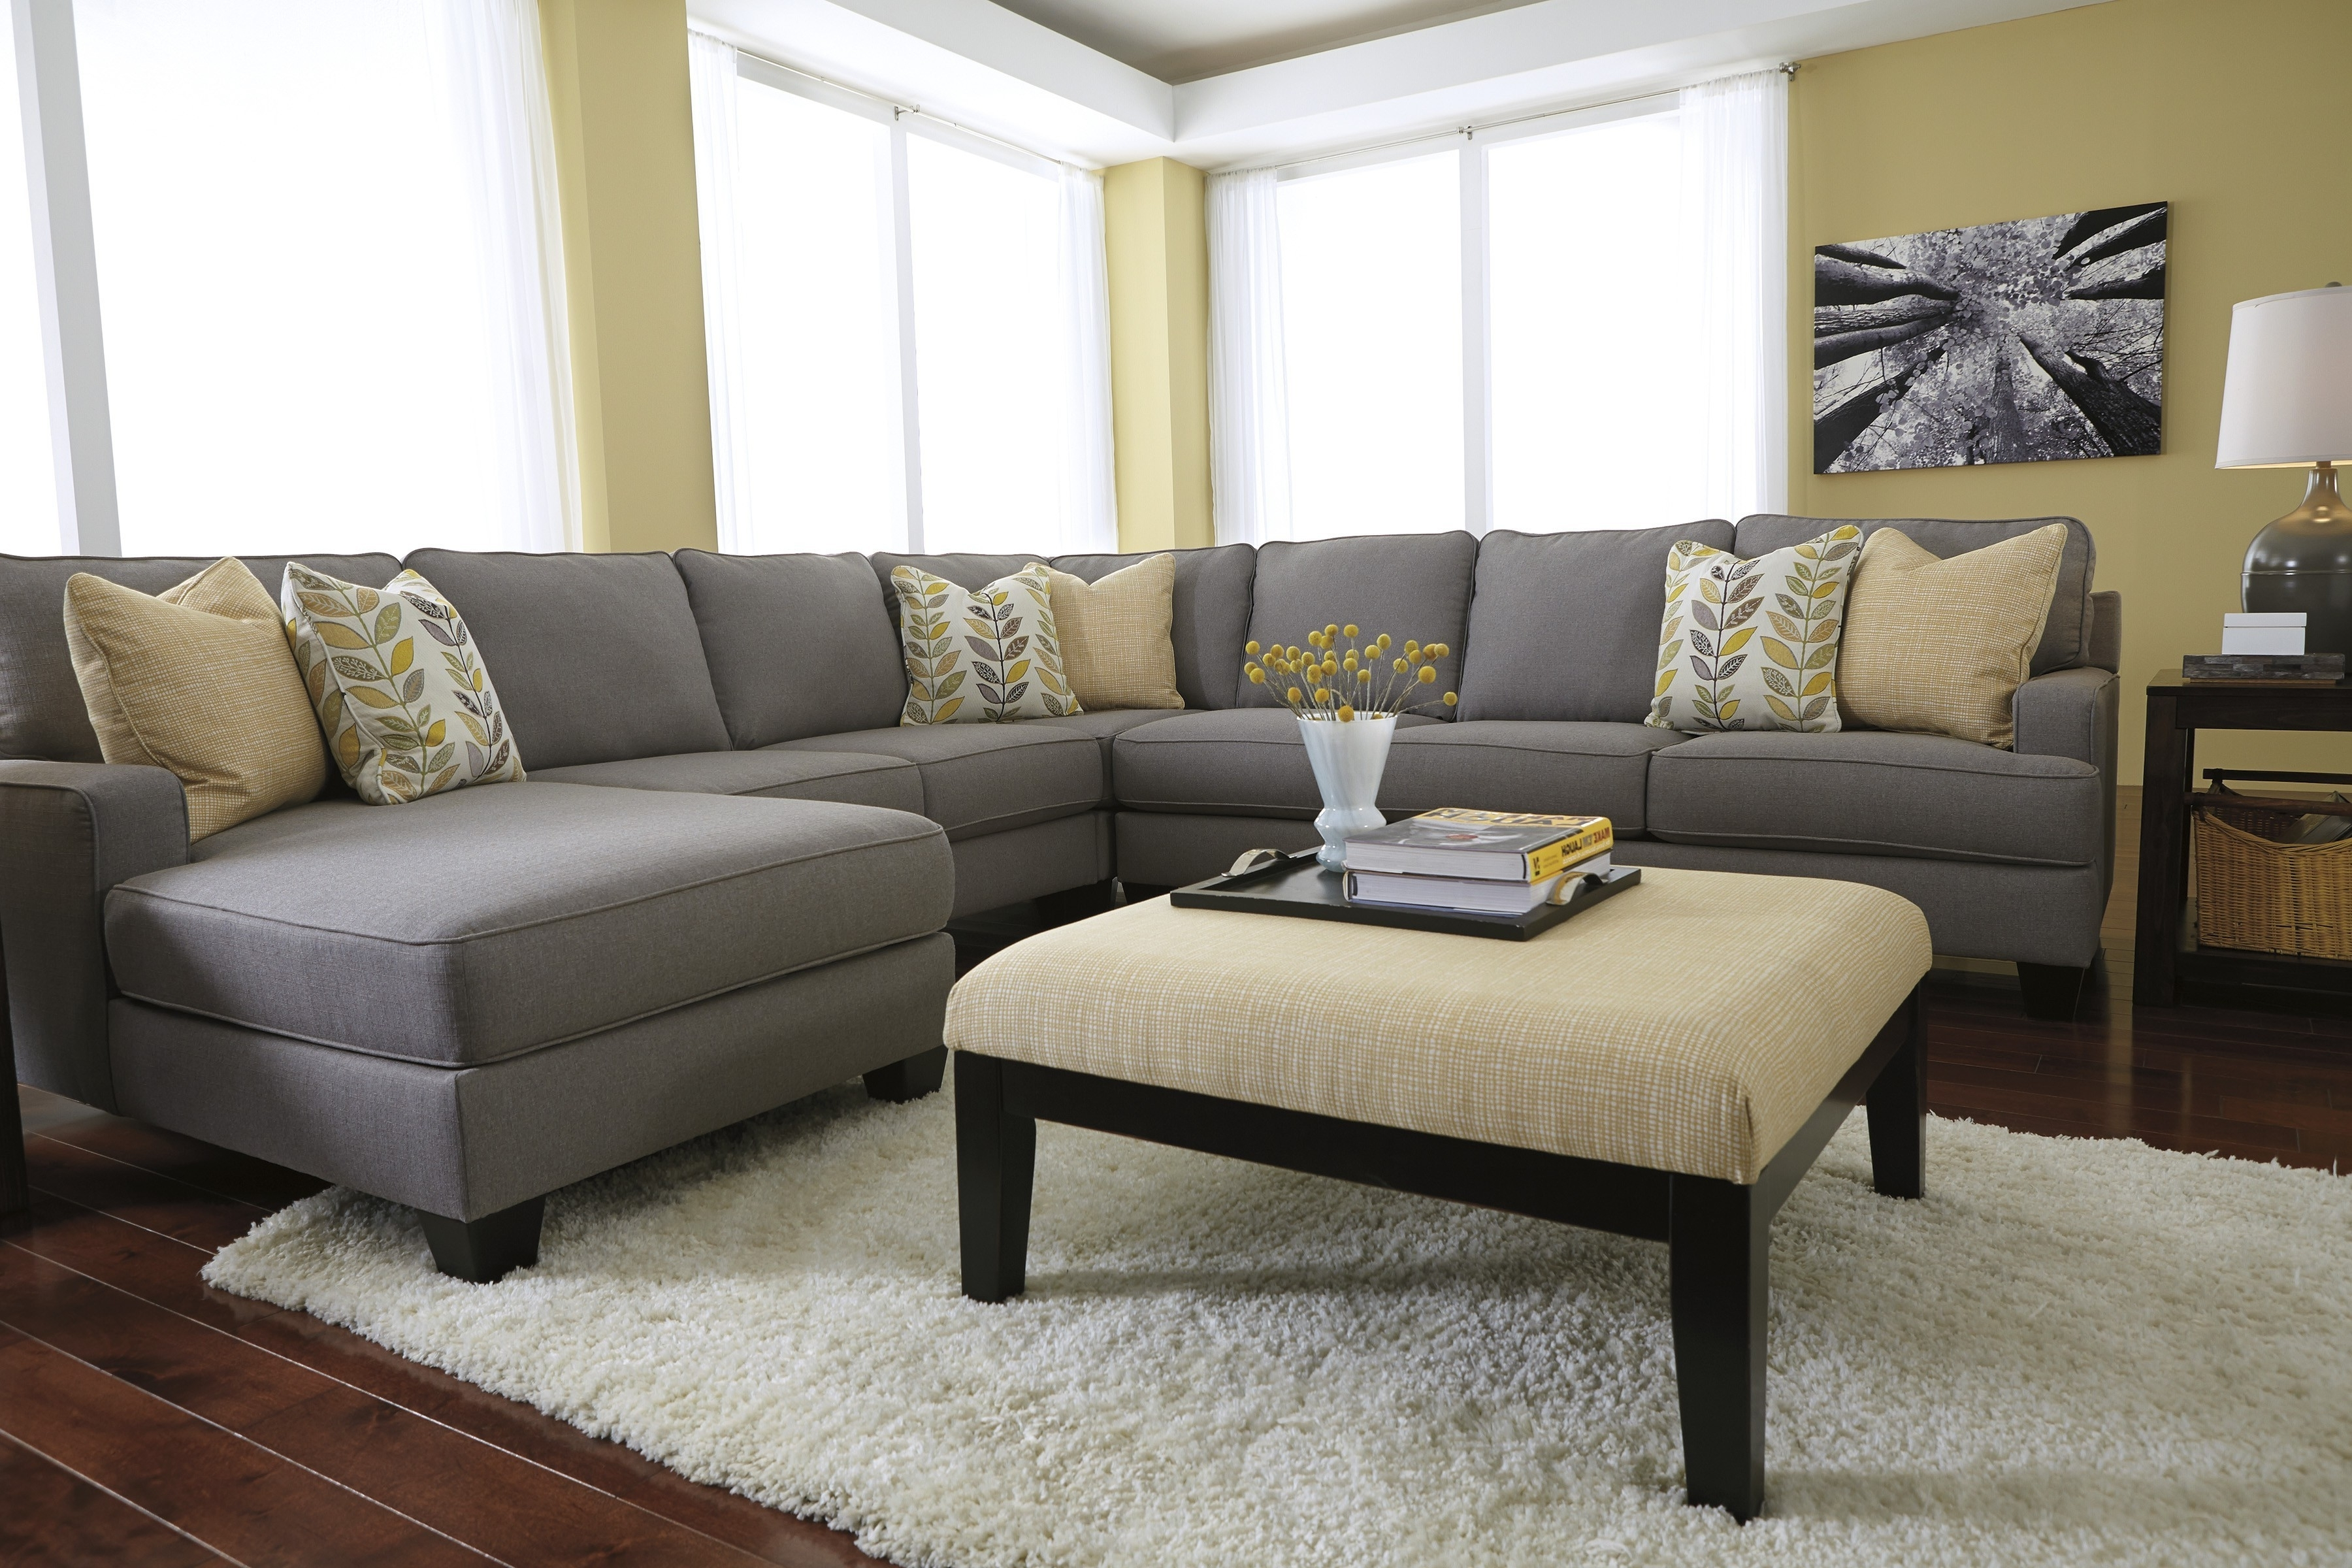 Sectional Sofas Decorating For Well Known Home Design : Extraordinary Best Modern Fabric Sectional Sofas (View 10 of 15)